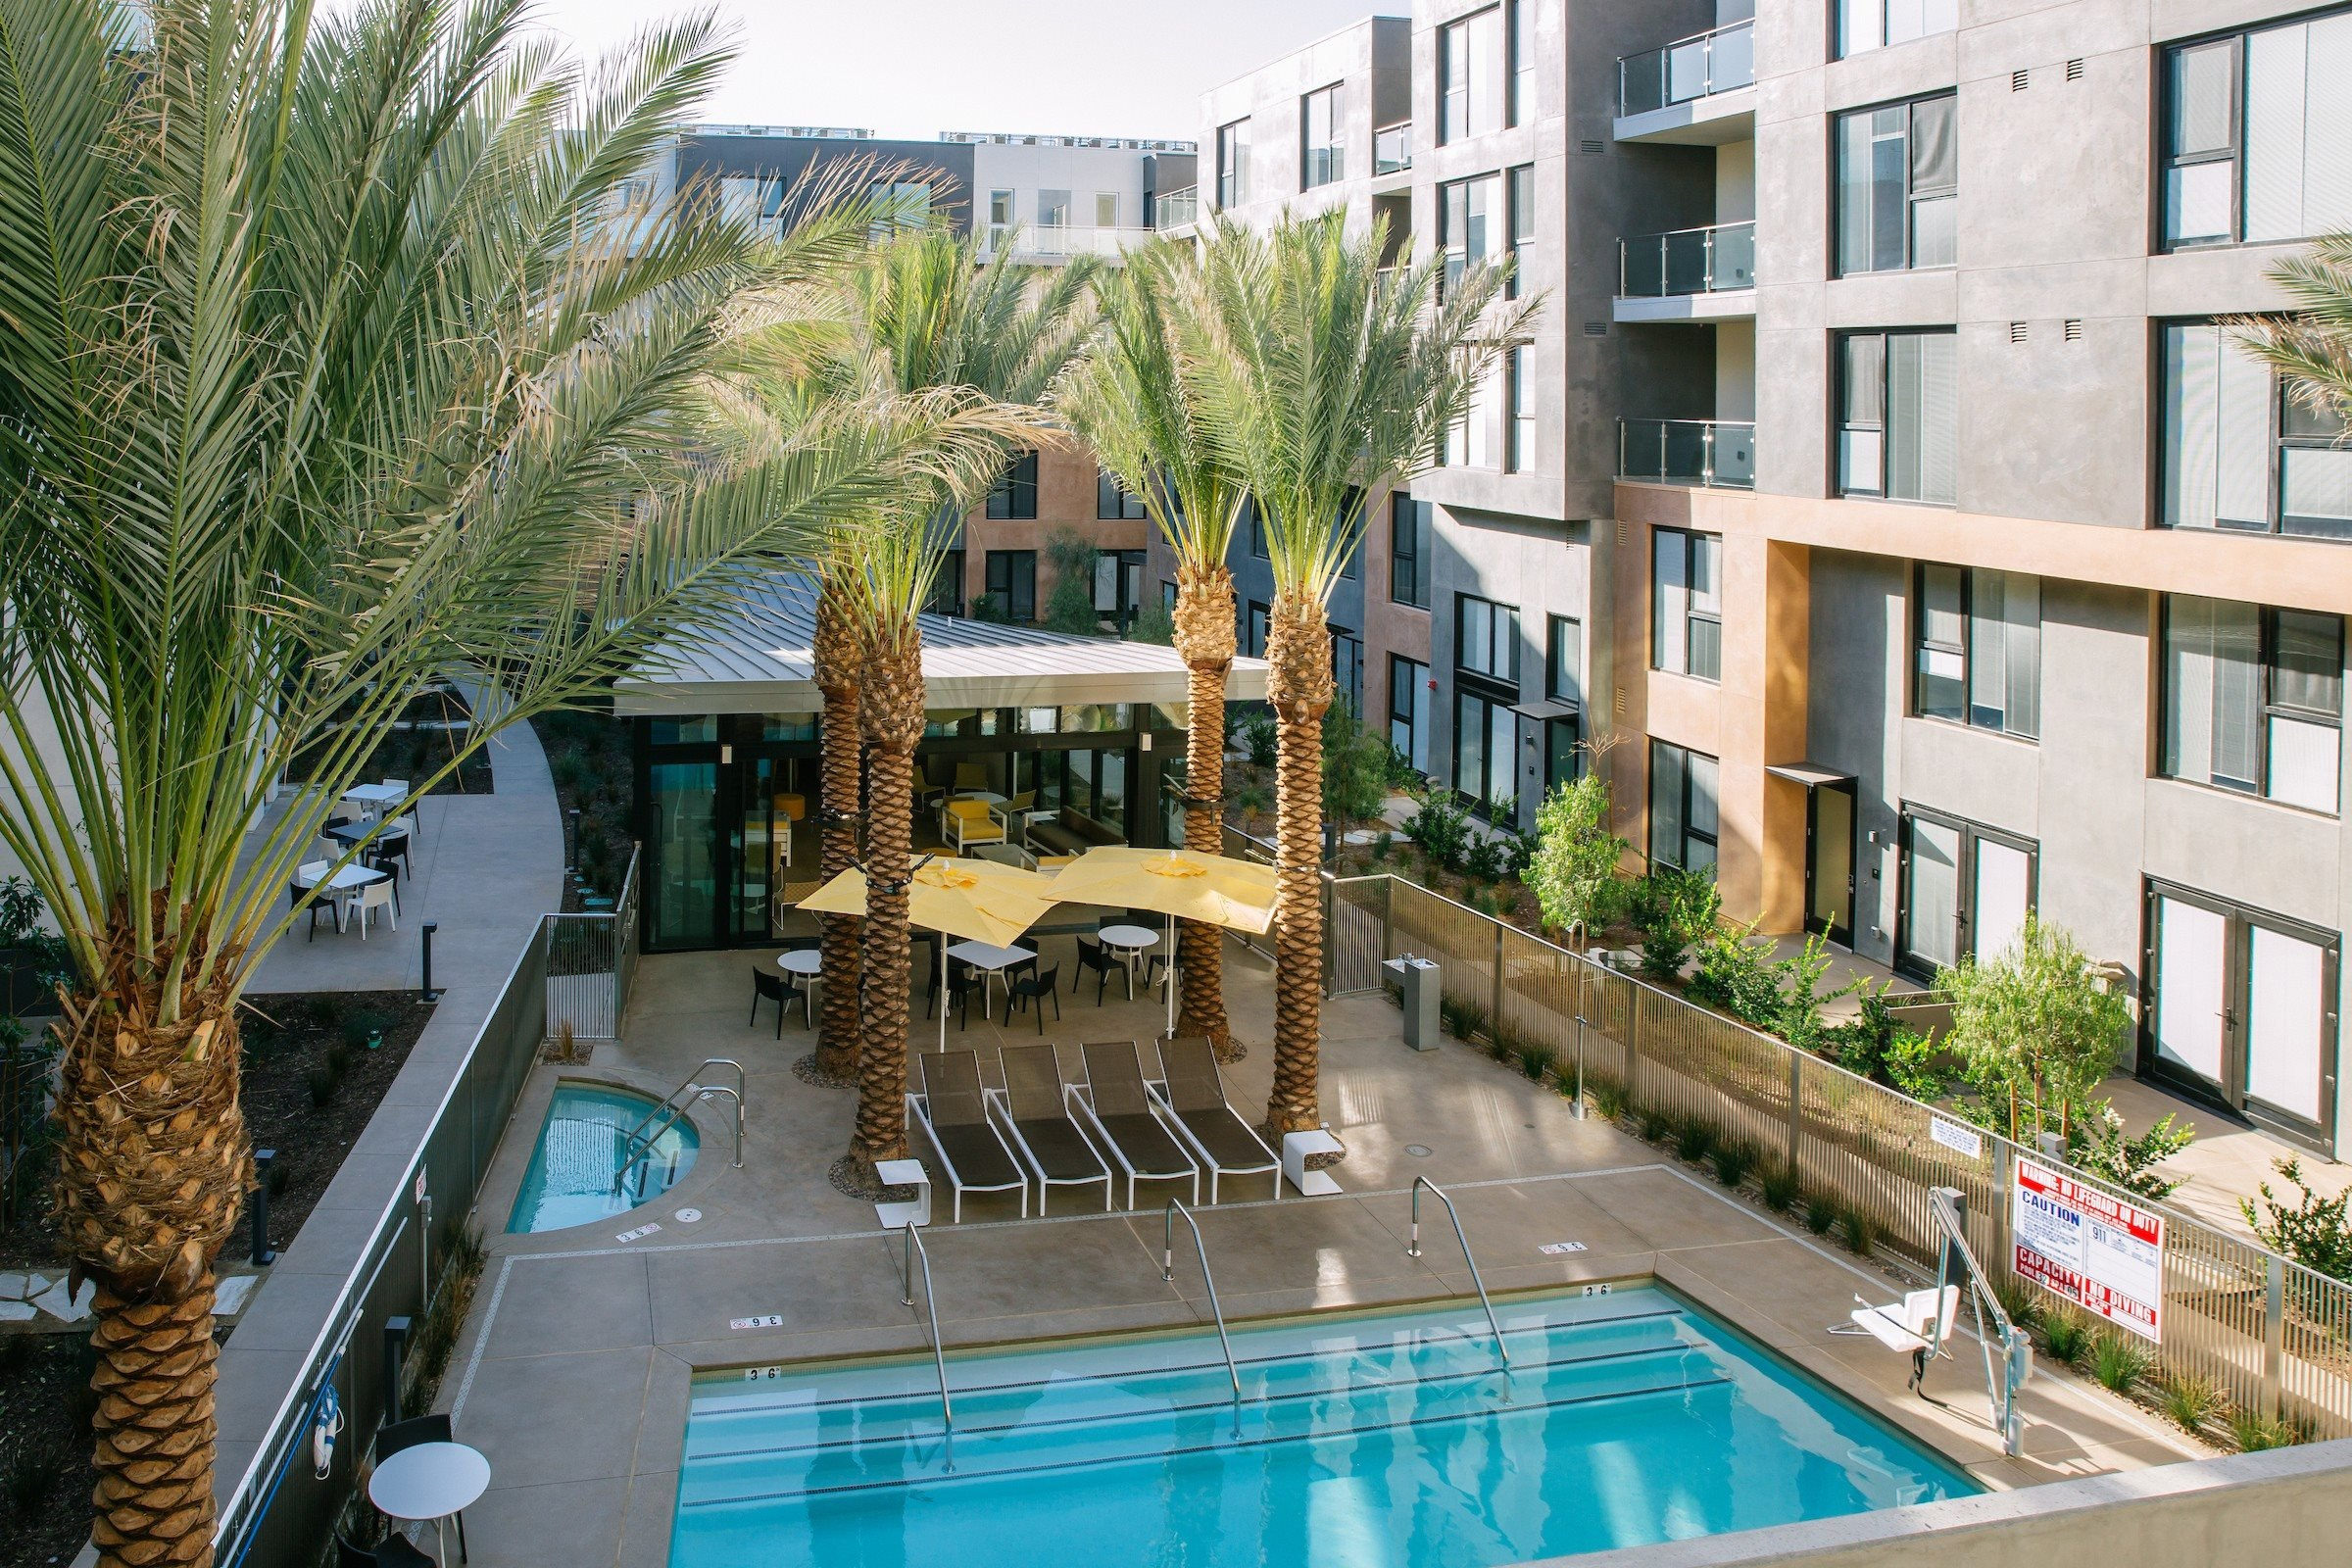 Outdoor Pool Area at Block C, San Marcos, CA,92078